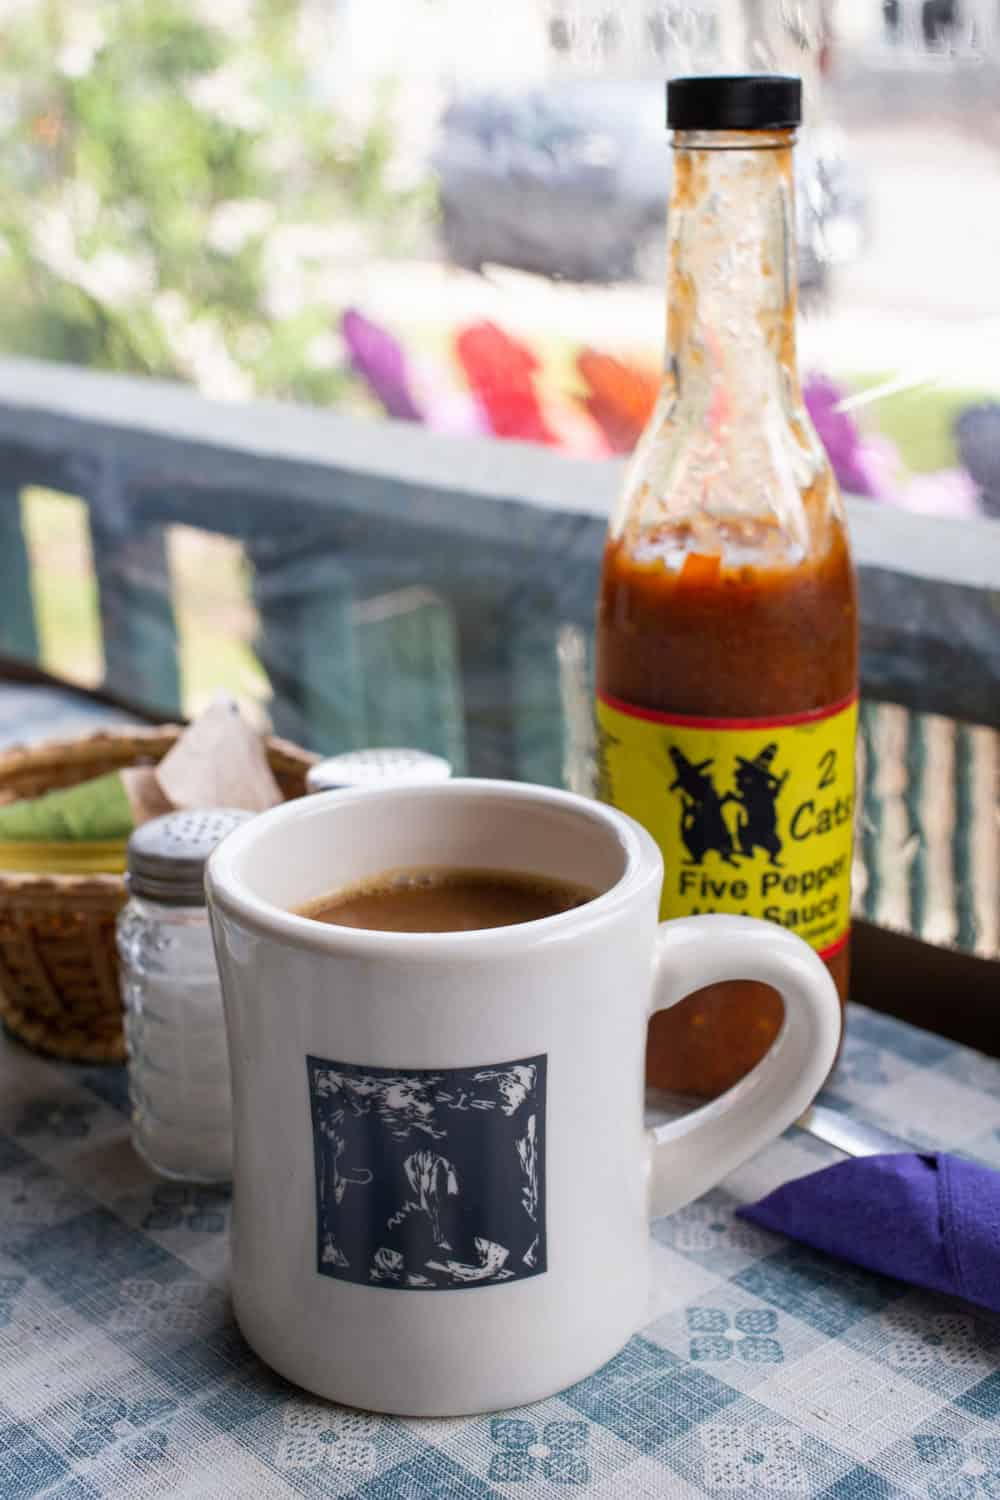 2 Cats coffee and hot sauce in Bar Harbor